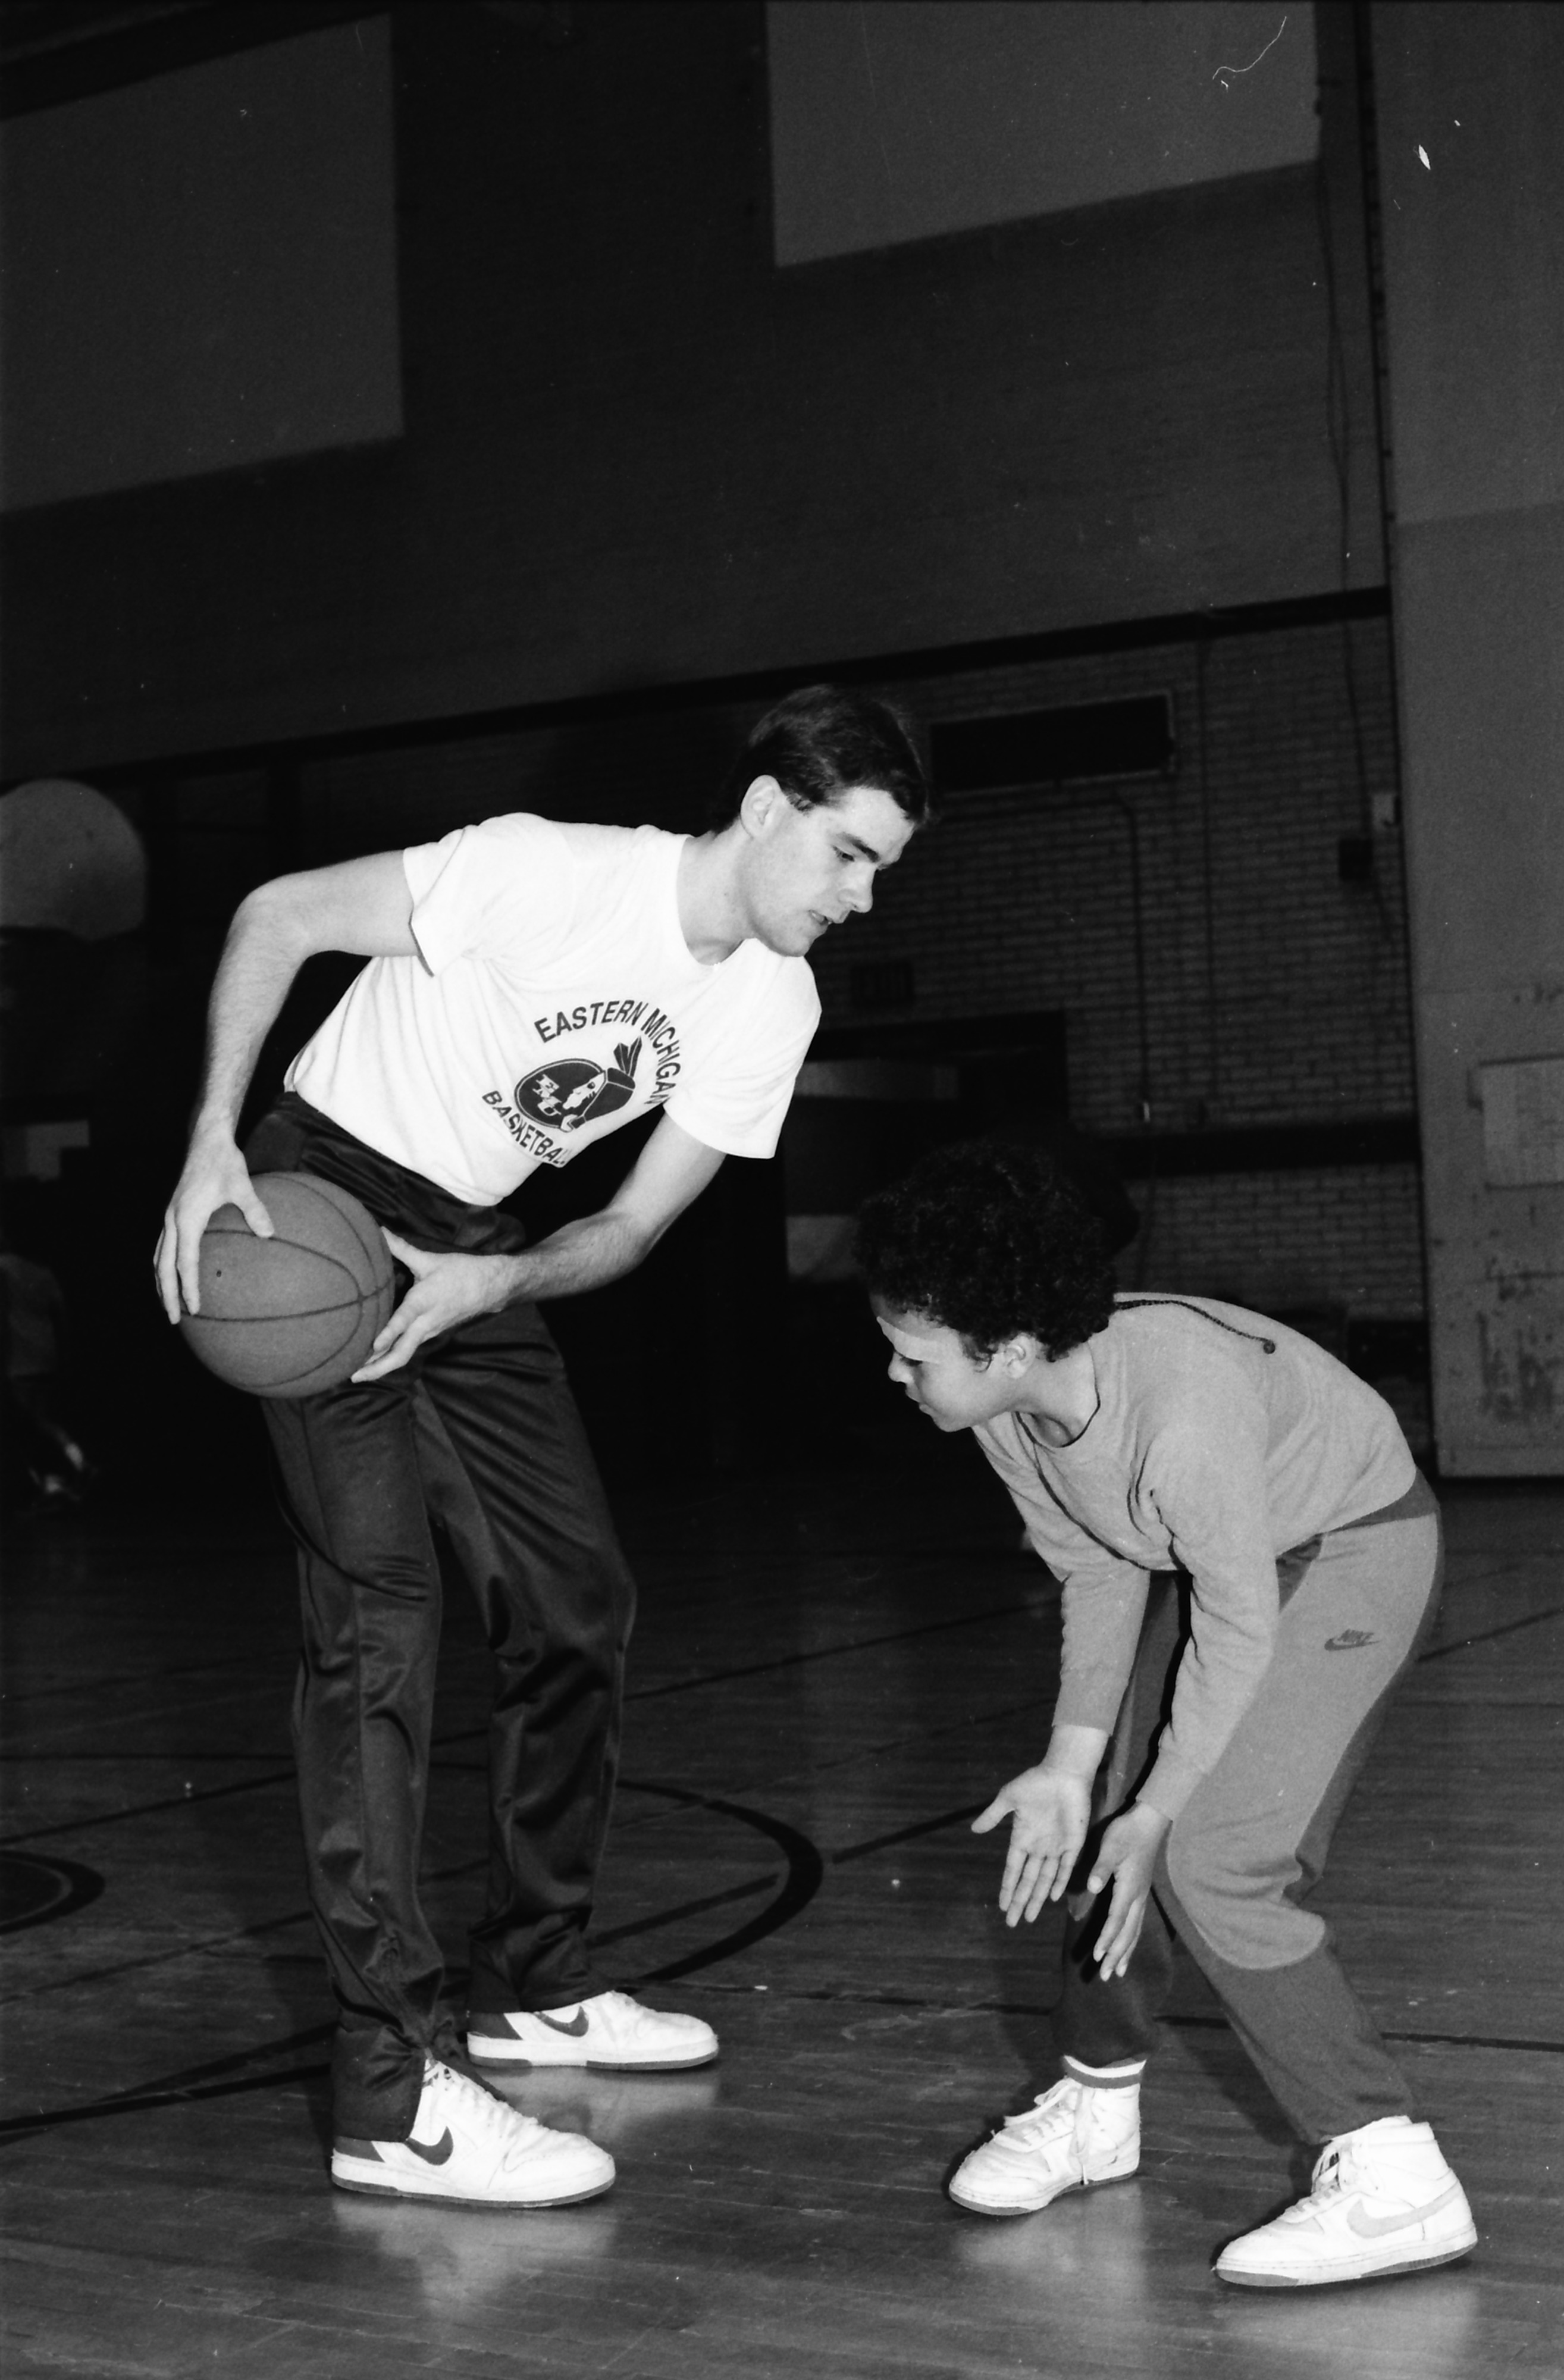 Brad Soucie and Javon Hurston Practice for Parkridge Basketball League, March 1986 image